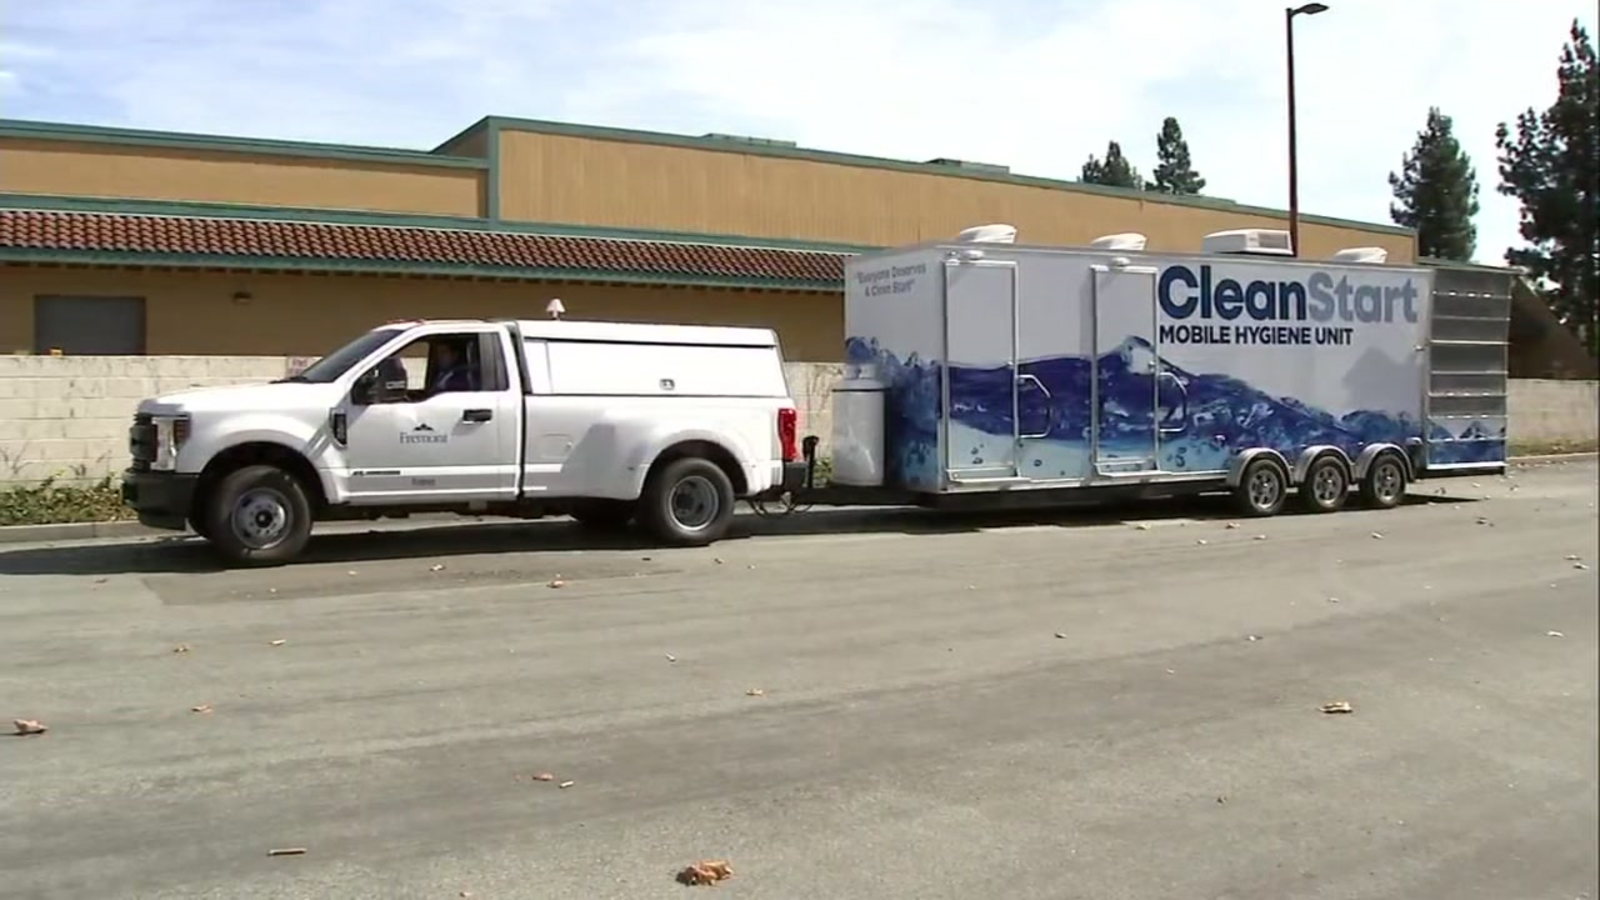 Mobile hygiene unit for homeless 'CleanStart' launches in East Bay